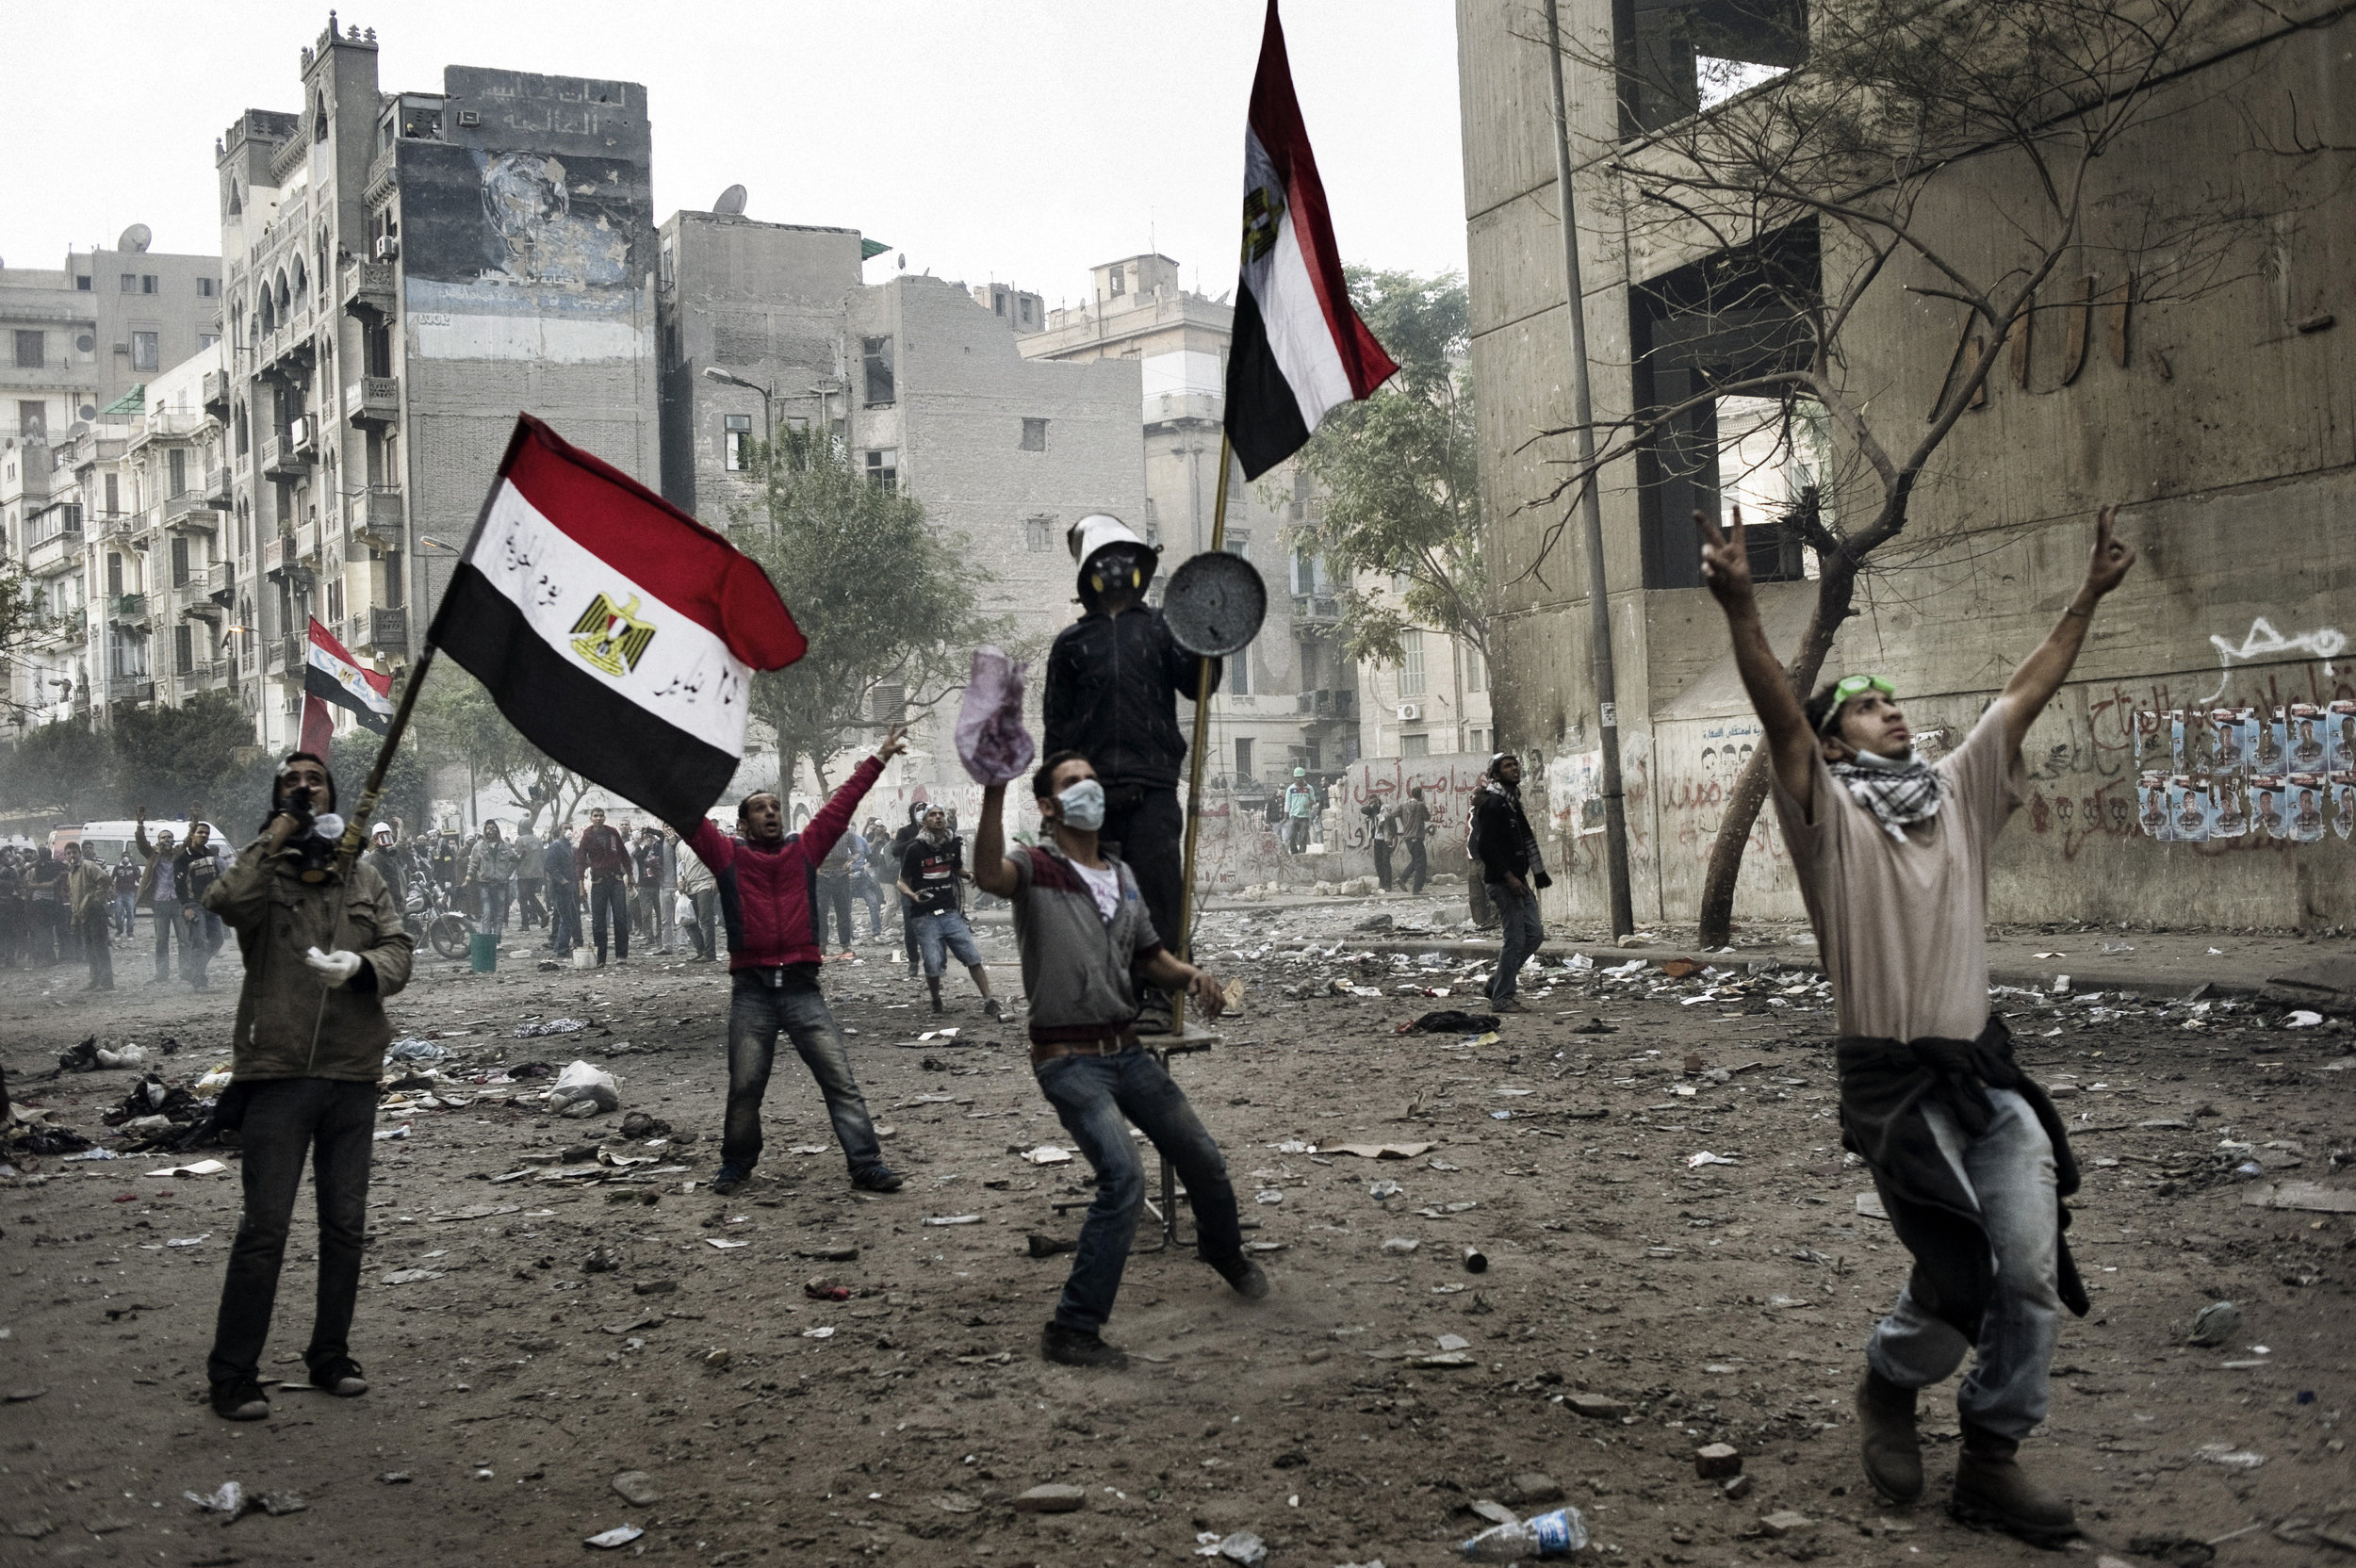 Cairo Egypt November 23, 2011:The battle zone along Mohamed Mahmoud street in Cairo, November 23, 2011.